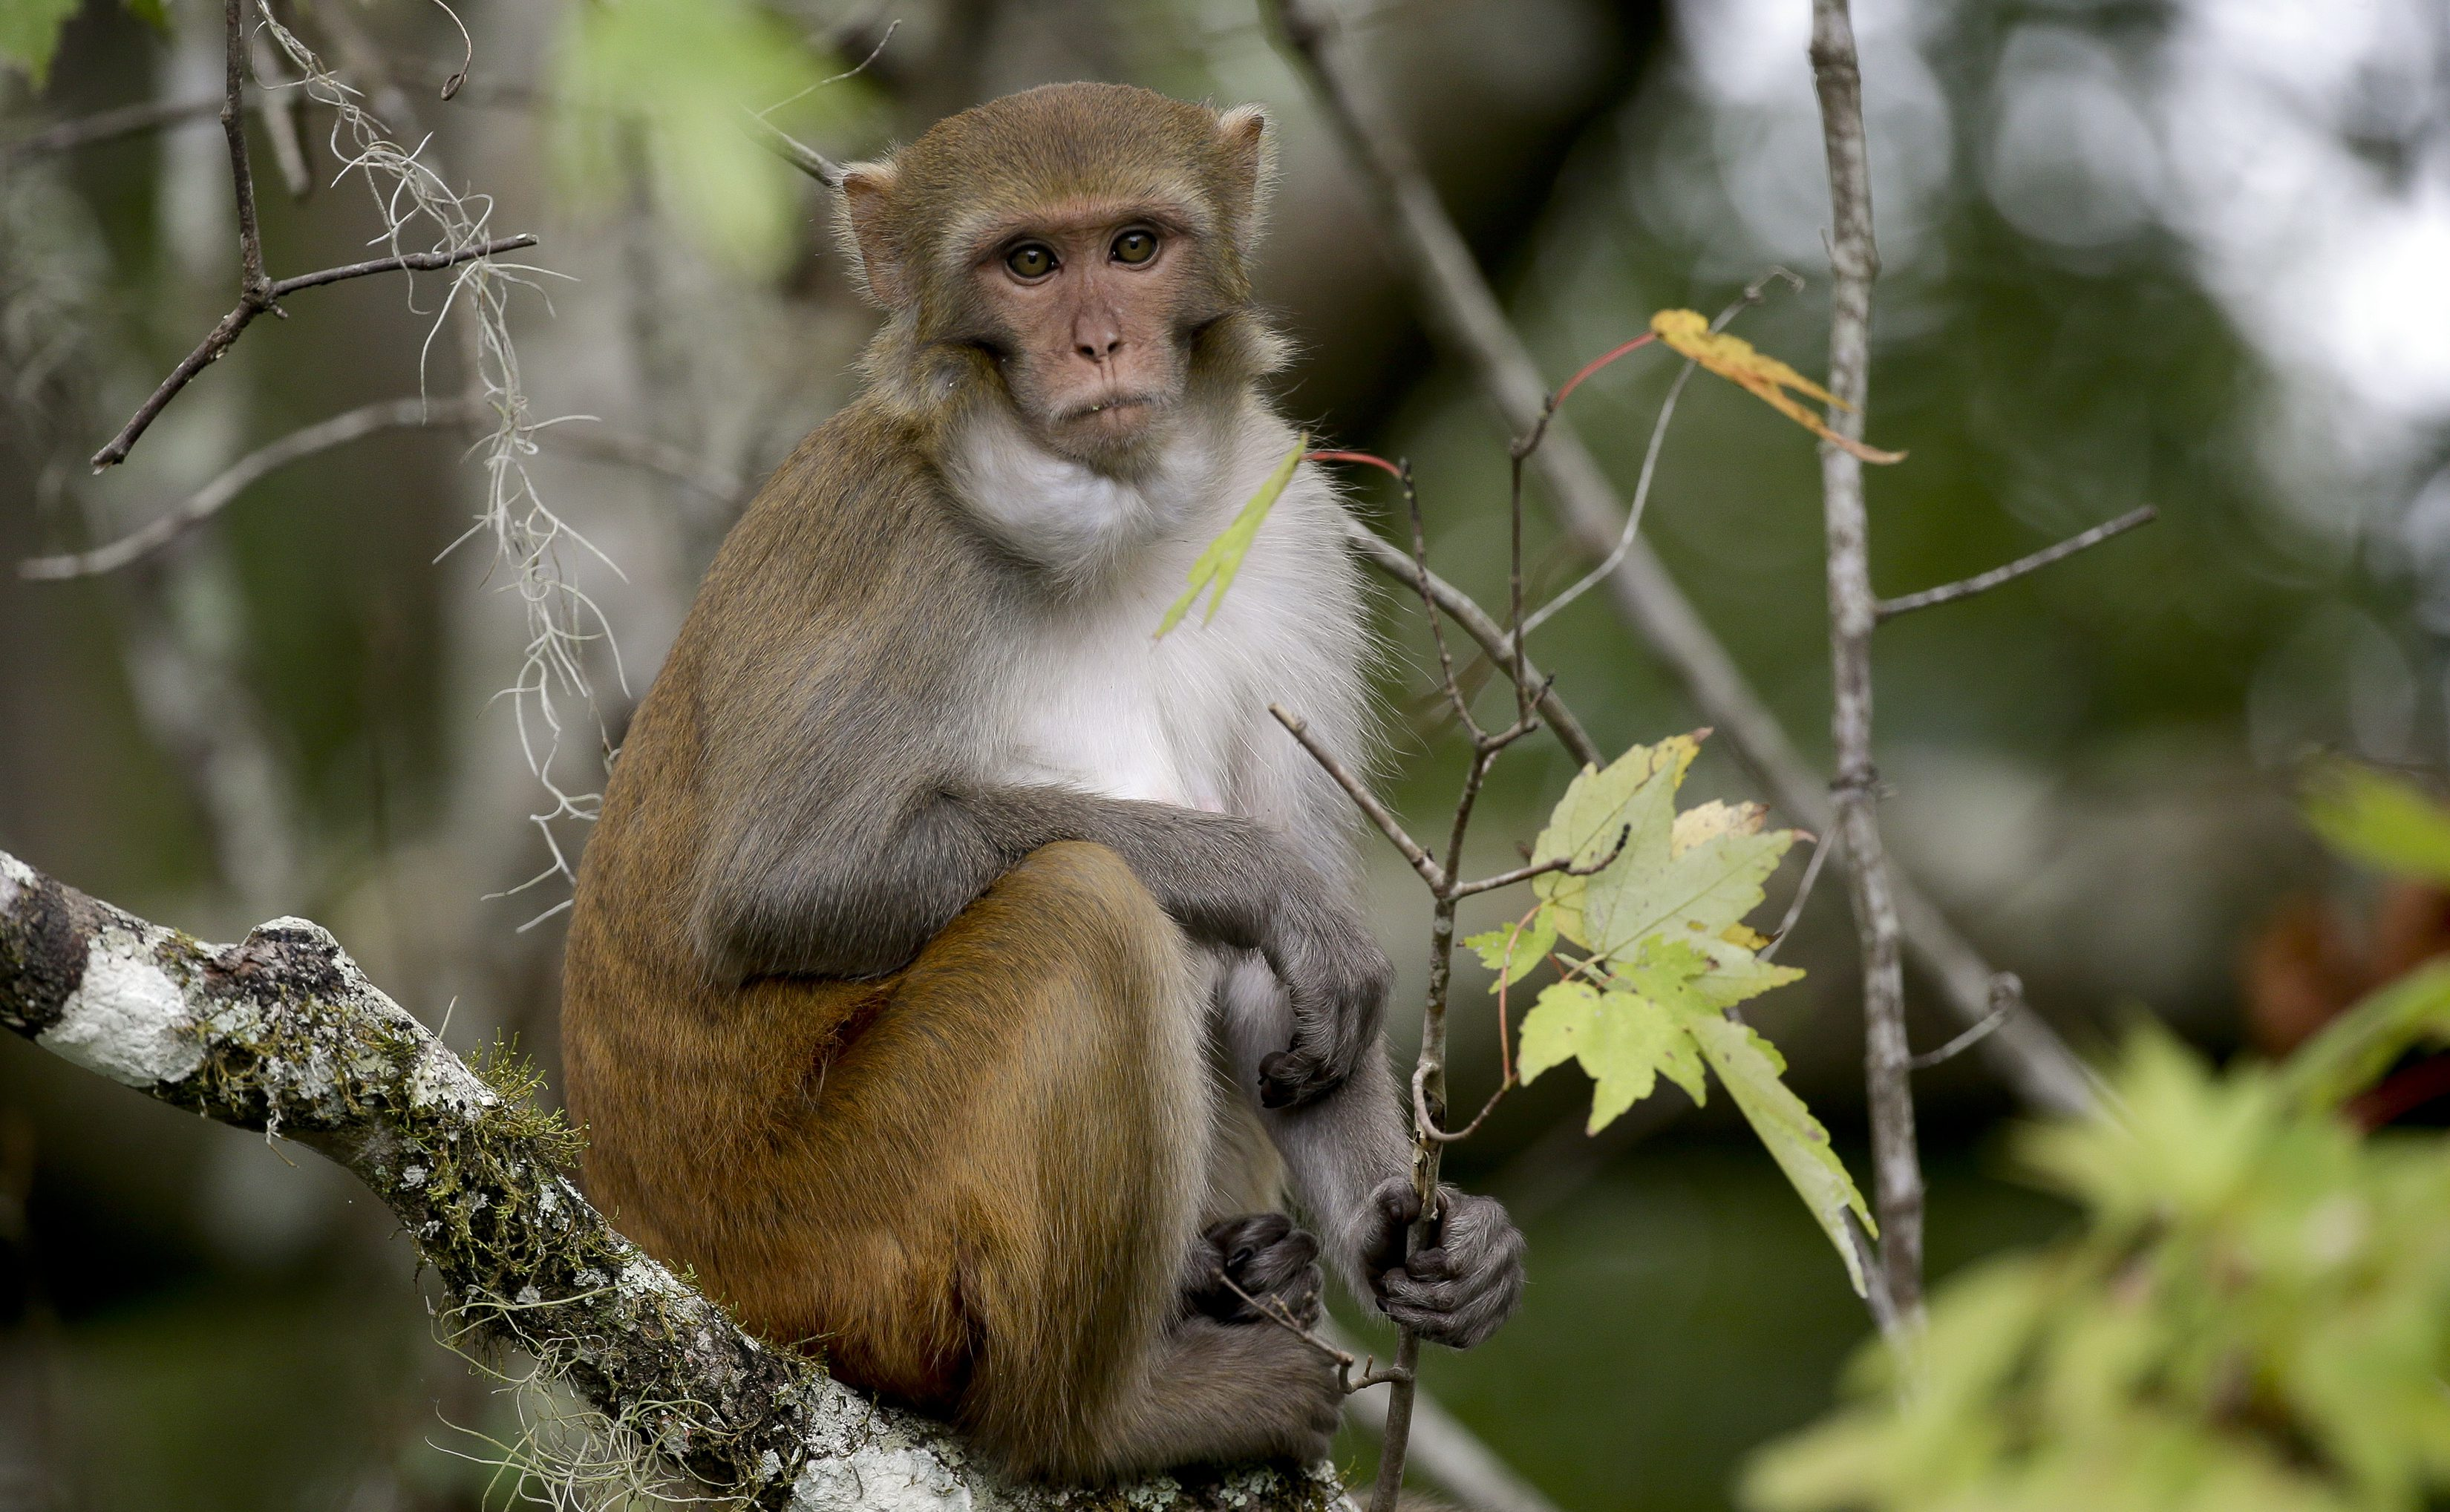 Sex in advertising works on monkeys according to a new study quartz 10 2017 photo a rhesus macaques monkey observes voltagebd Choice Image